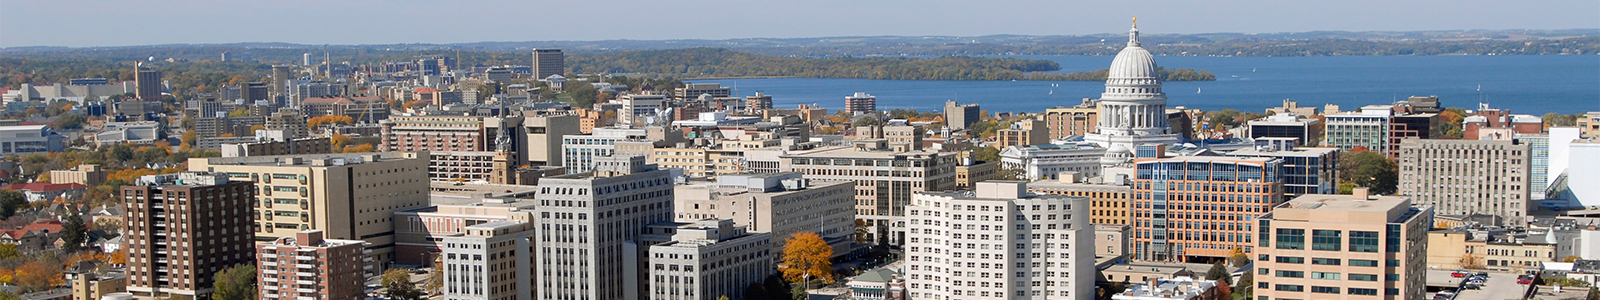 Aerial view of Madison city skyline. UW Madison campus in the background.